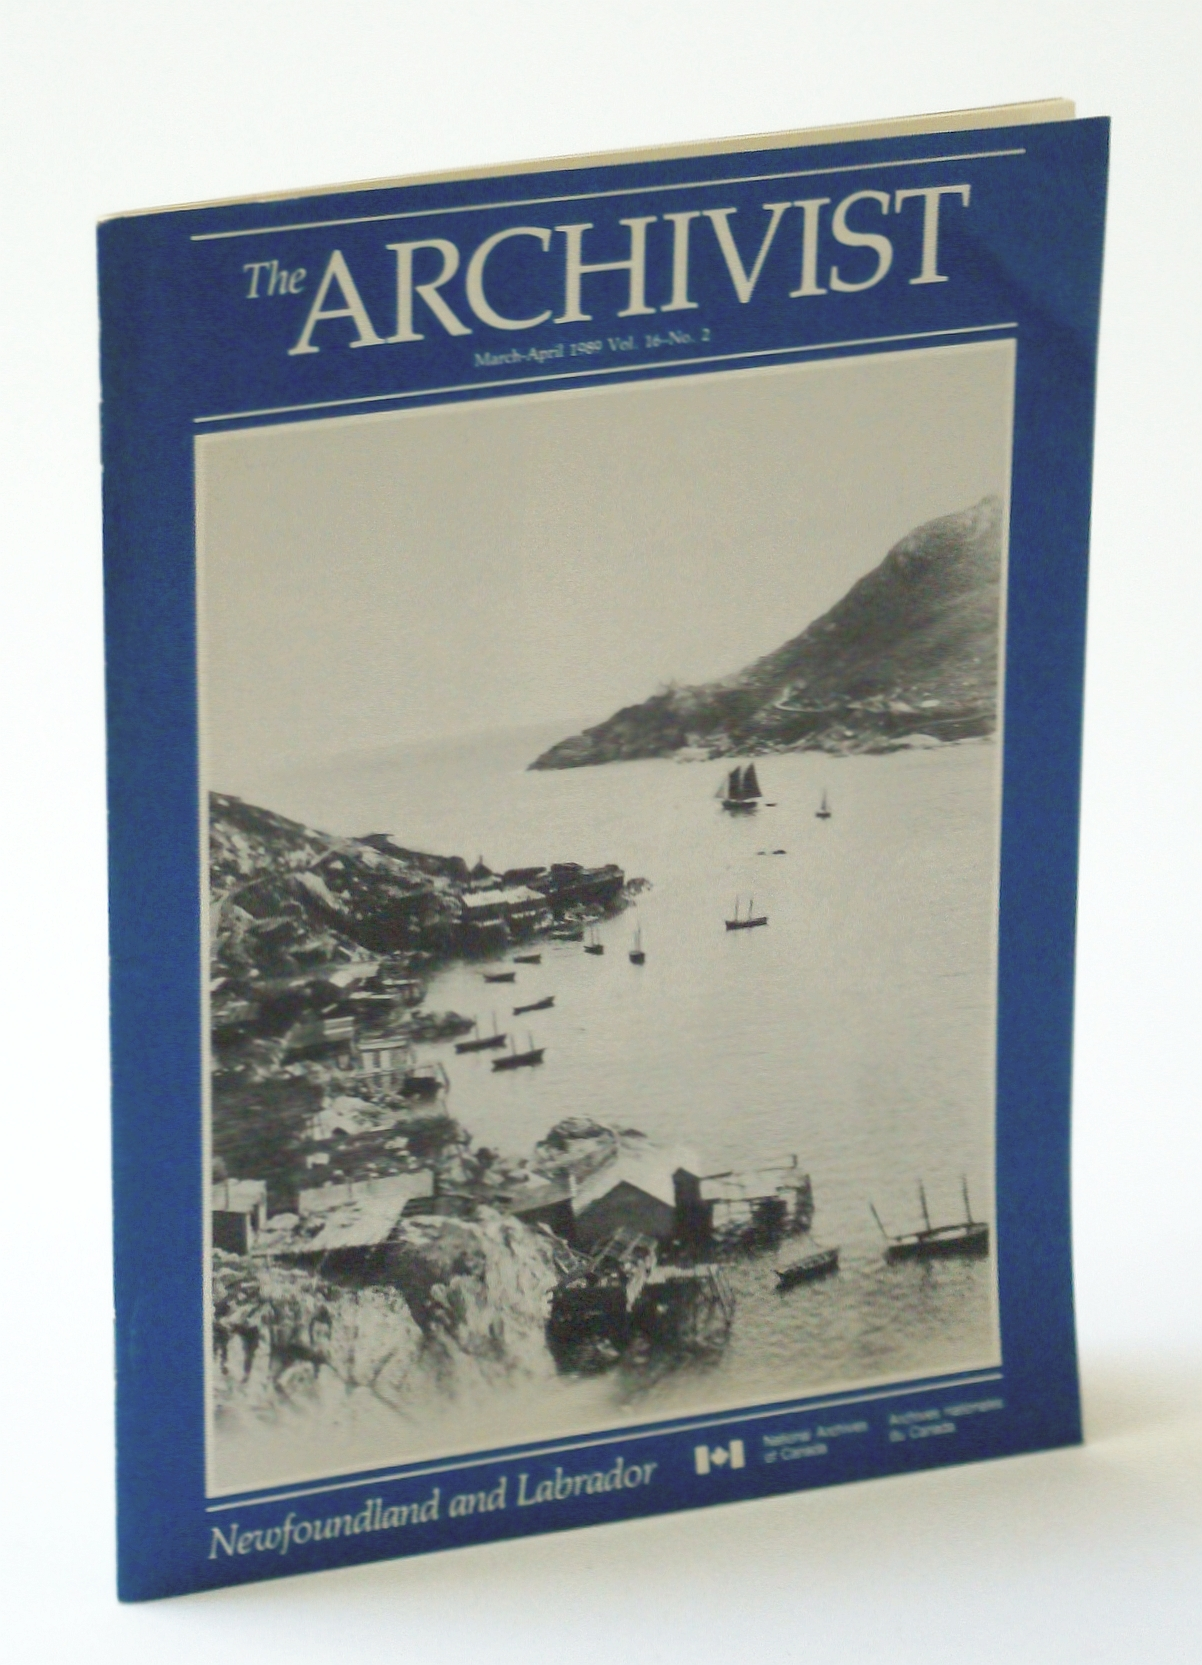 Image for The Archivist Magazine, March (Mar.) - April (Apr.) 1989, Vol. 16, No. 2 - Newfoundland and Labrador